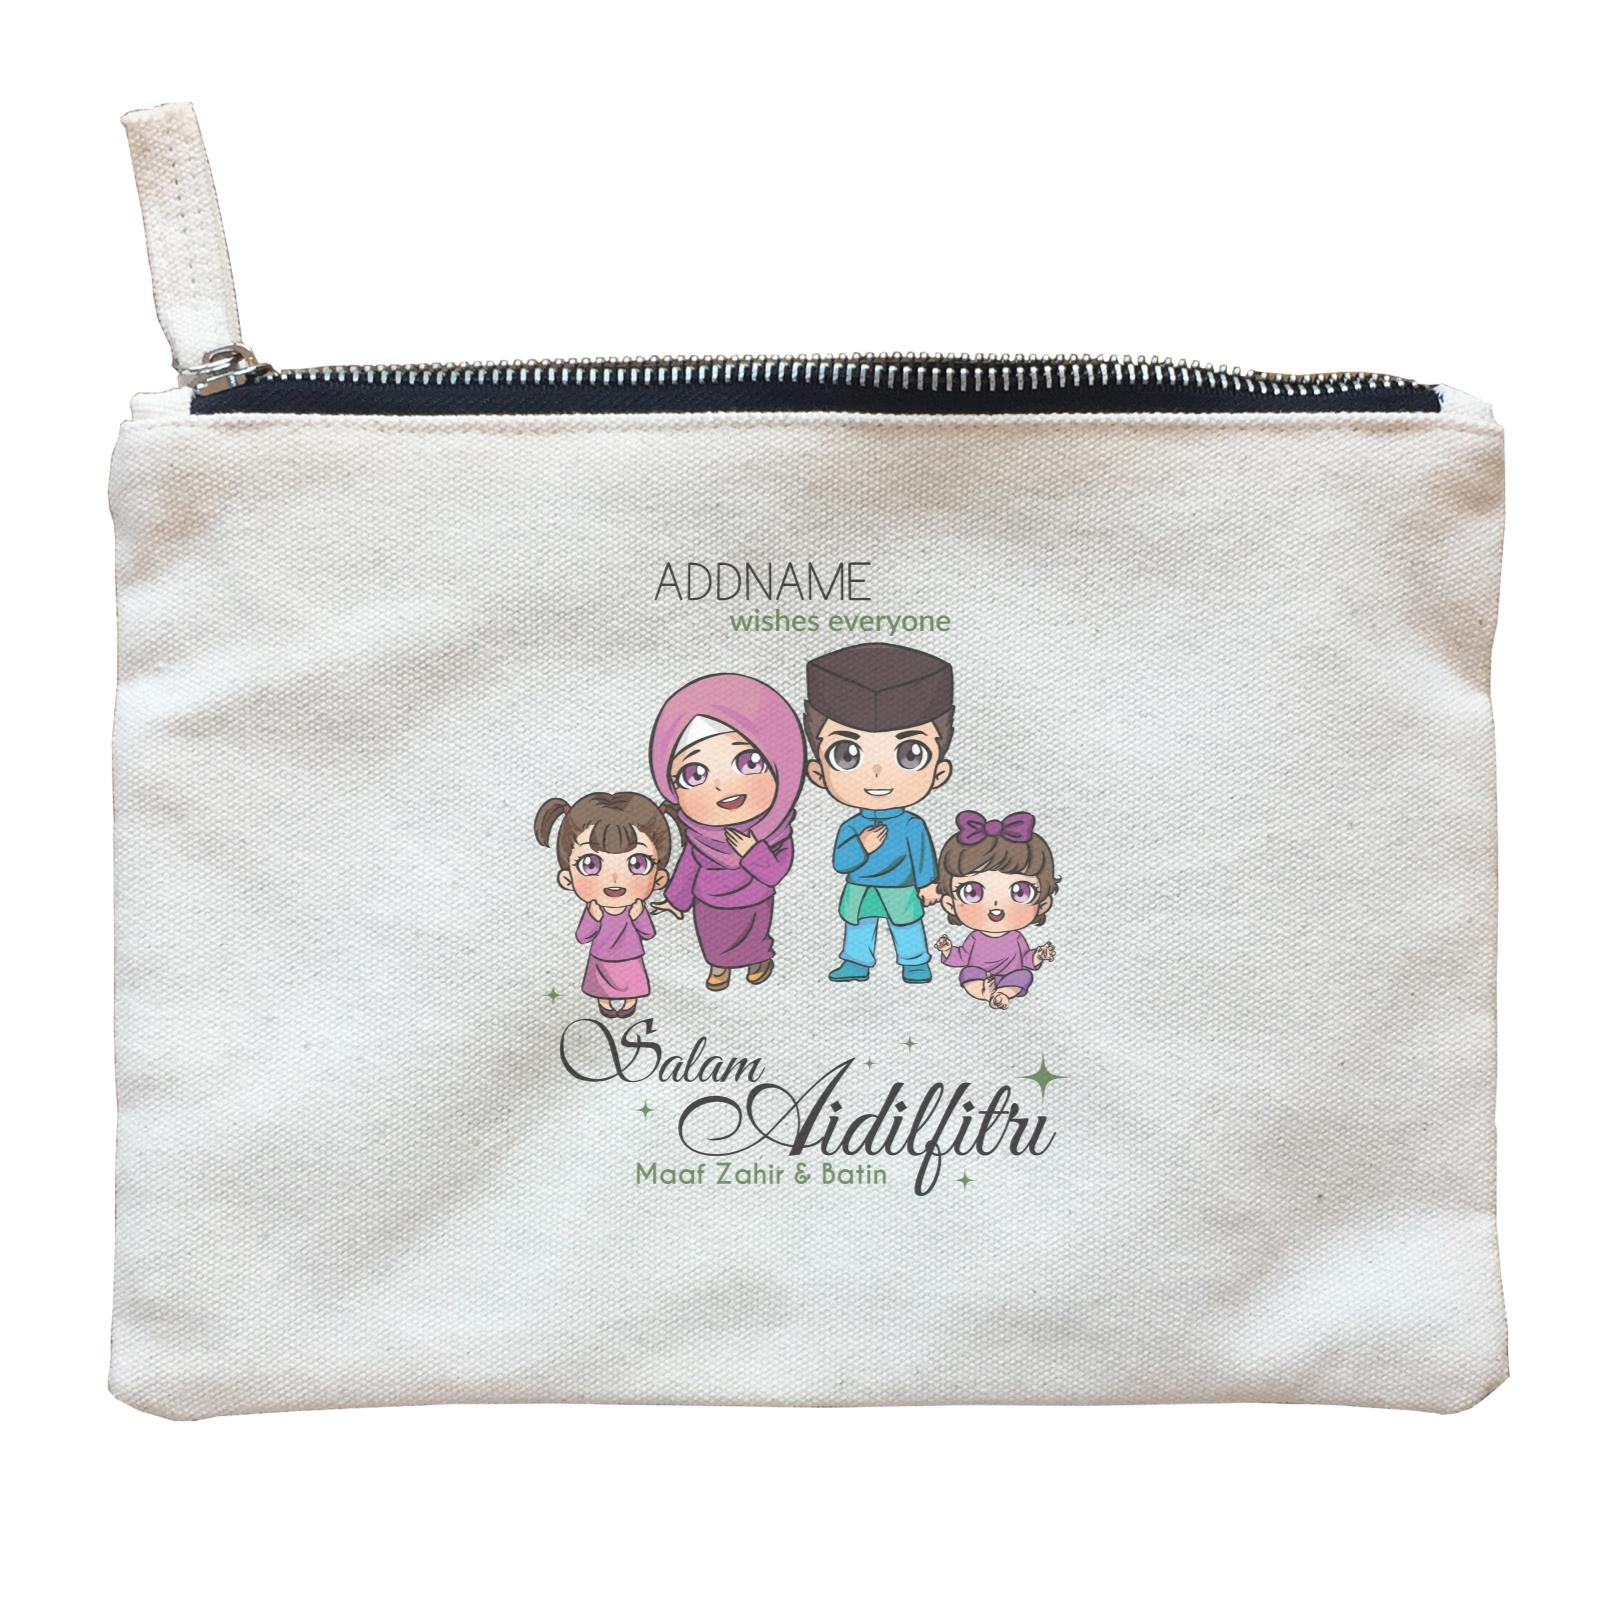 Raya Chibi Family Girl And Baby Girl Addname Wishes Everyone Salam Aidilfitri Maaf Zahir & Batin Zipper Pouch